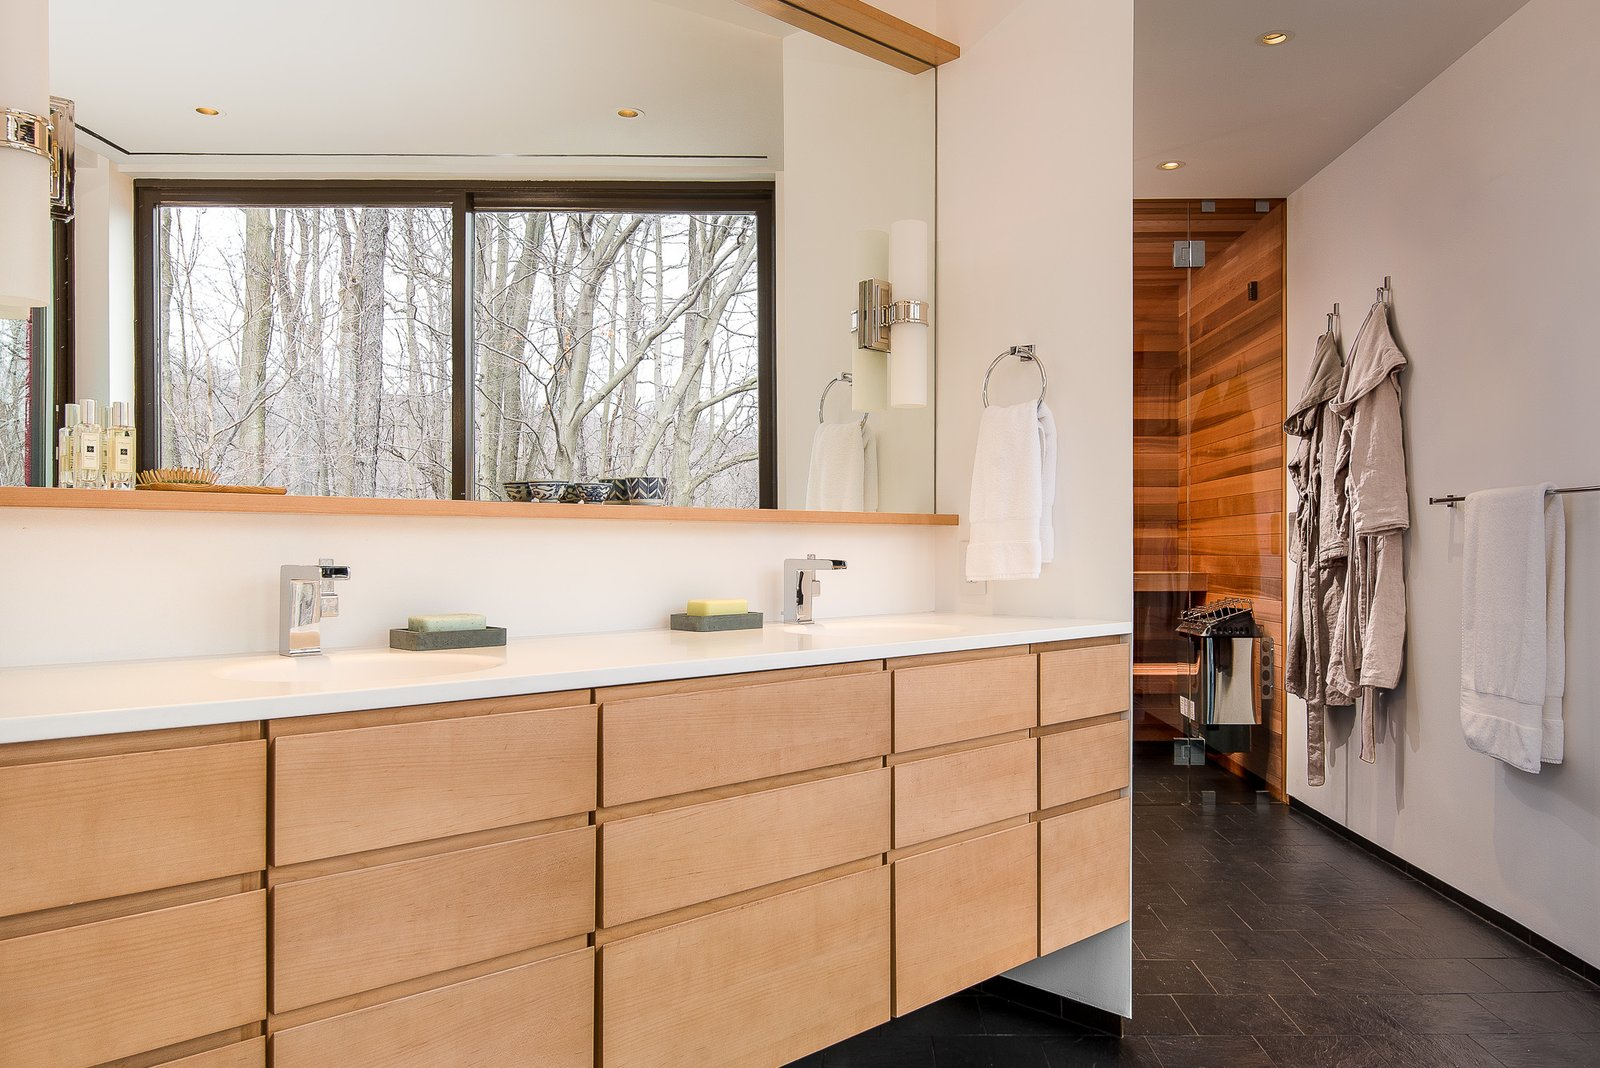 Master bath Tagged: Bath Room, Quartzite Counter, Slate Floor, and Ceiling Lighting.  House in the Woods by Kim Smith